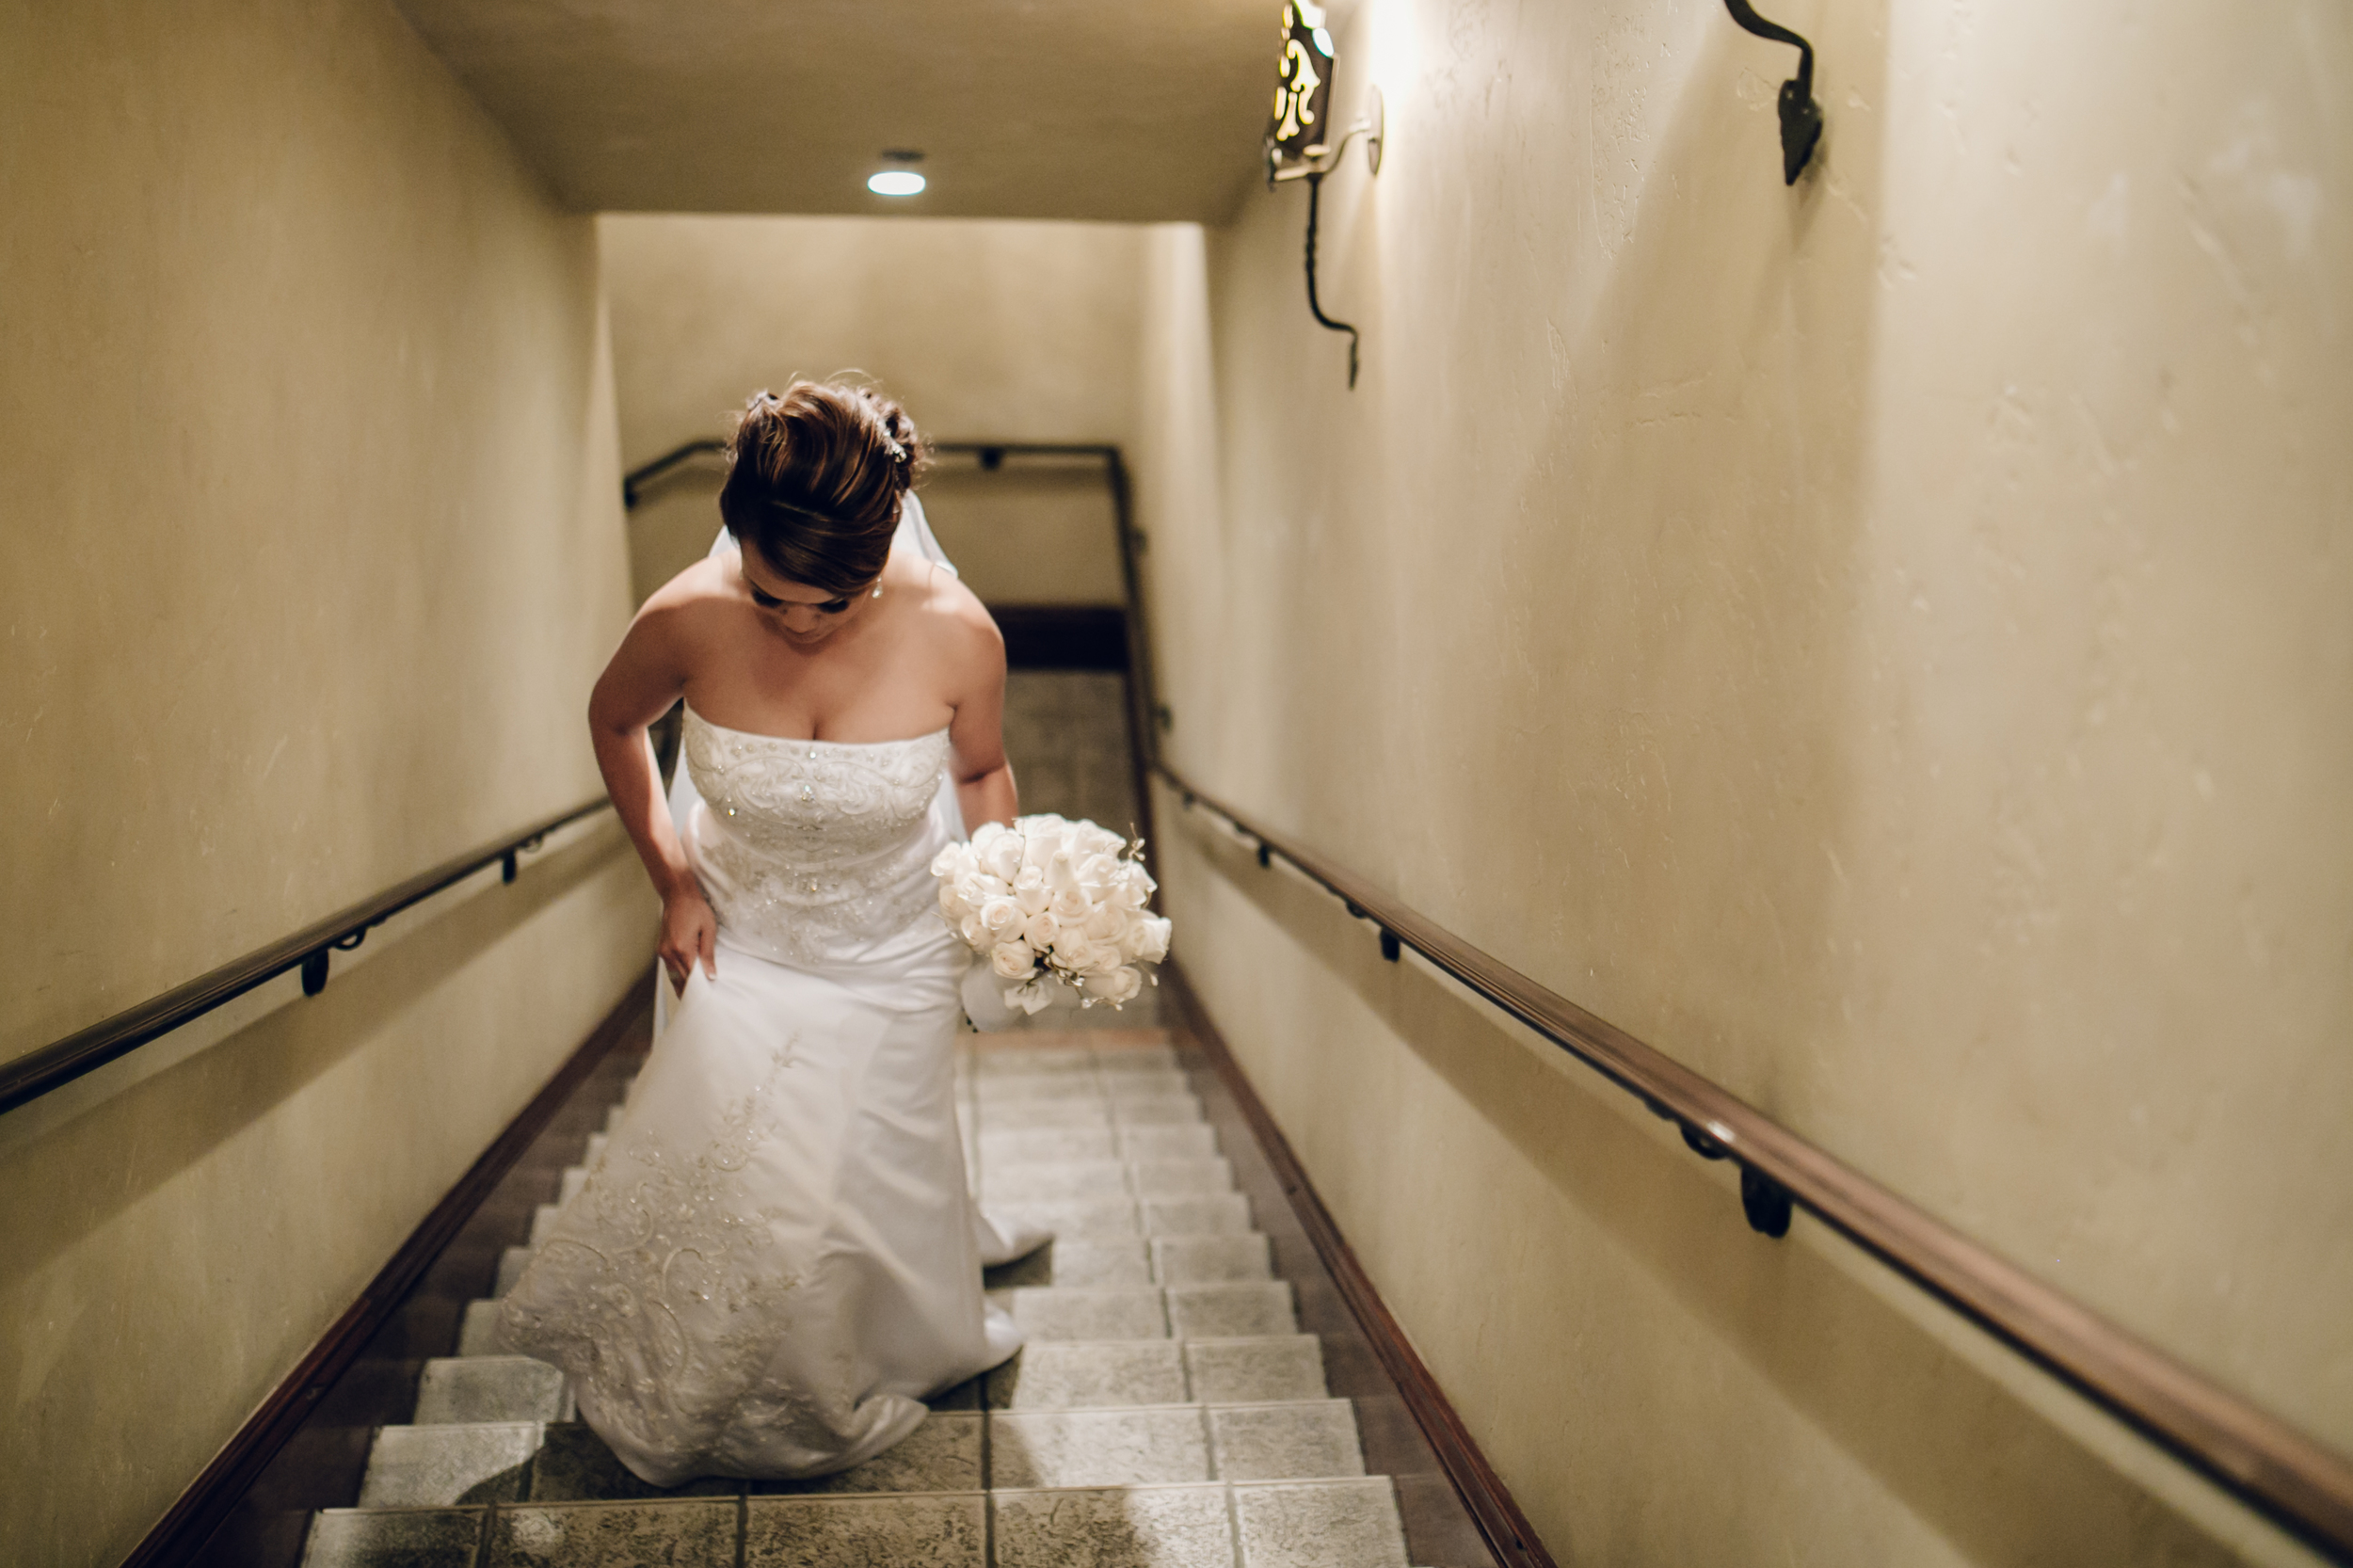 Shiela + Lester's Wedding 9-30-15 638.jpg